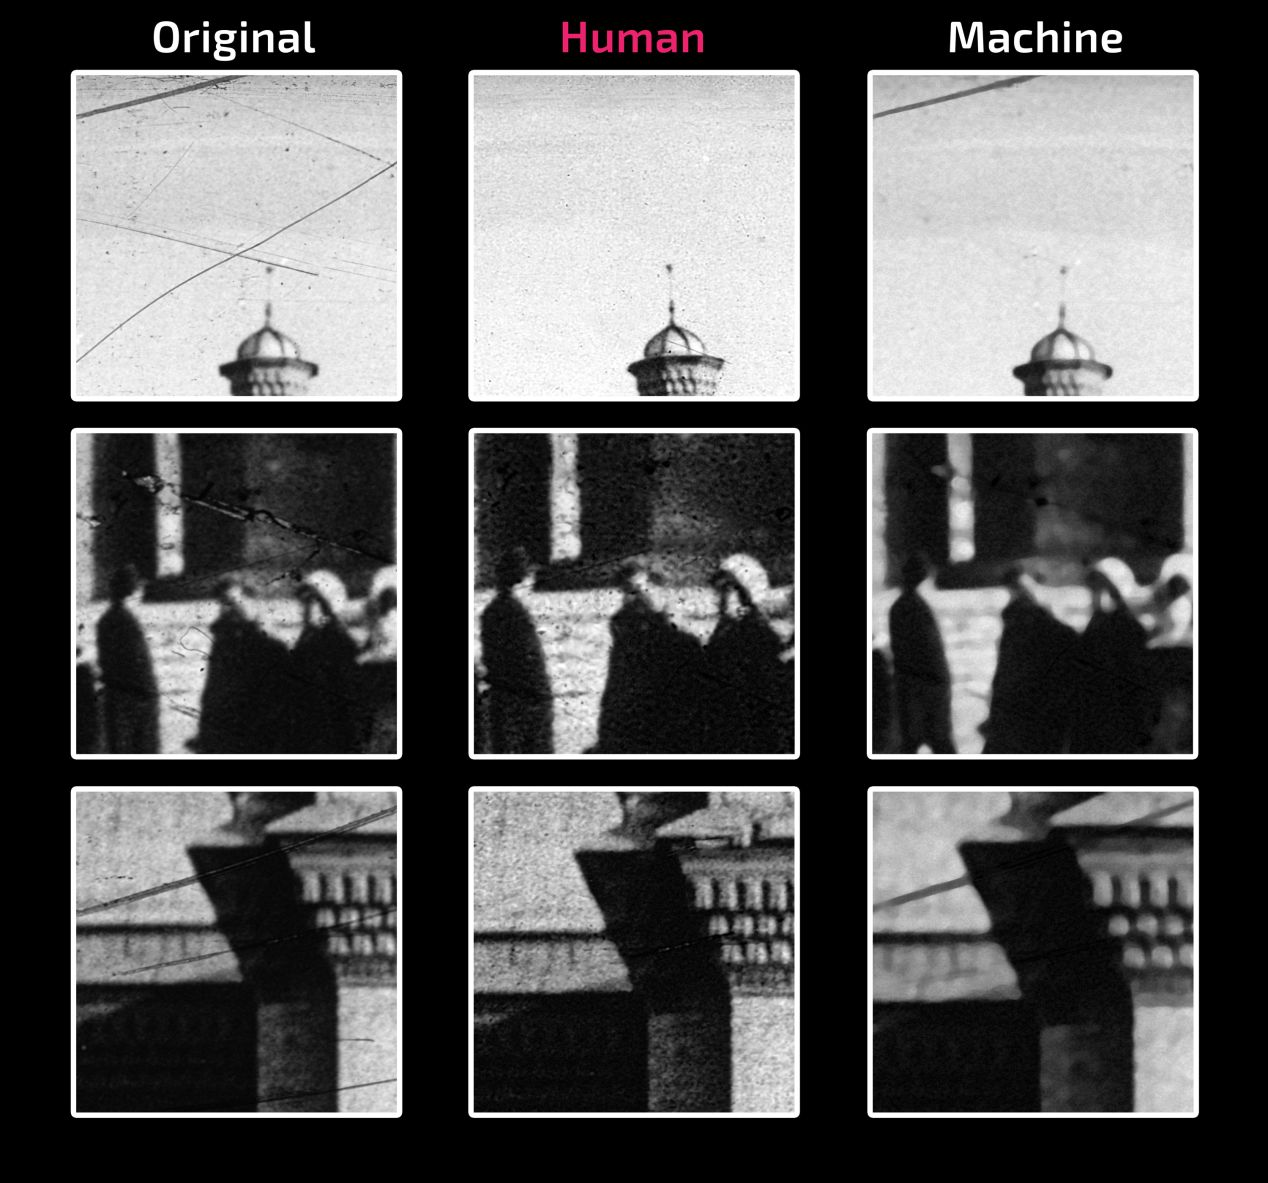 A comparison of the damaged scan against human/manual and machine restoration methods.